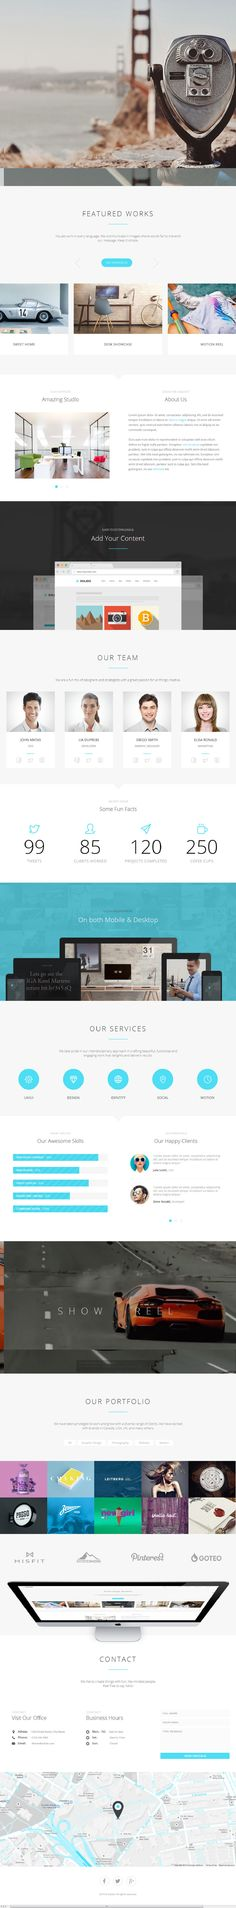 Solido is Premium Responsive Flat HTML5 Template with Parallax Sections. One Page Template. Ajax masonry portfolio. Retina ready.